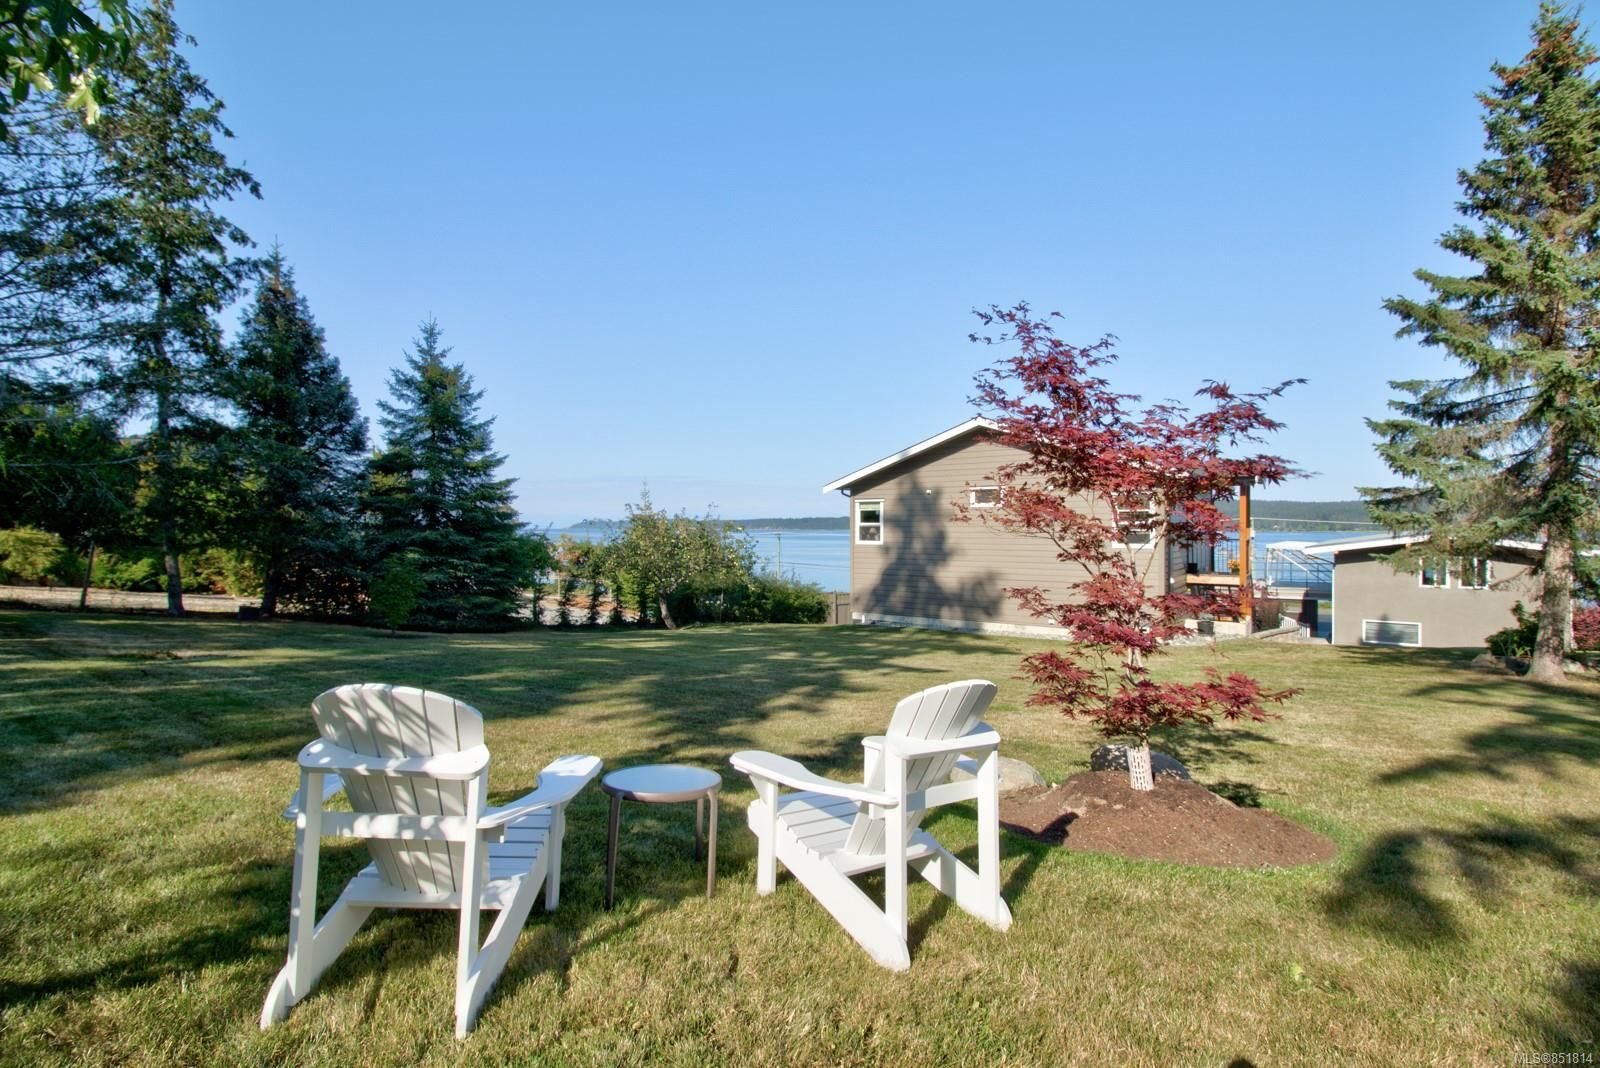 Photo 4: Photos: 191 Muschamp Rd in : CV Union Bay/Fanny Bay House for sale (Comox Valley)  : MLS®# 851814